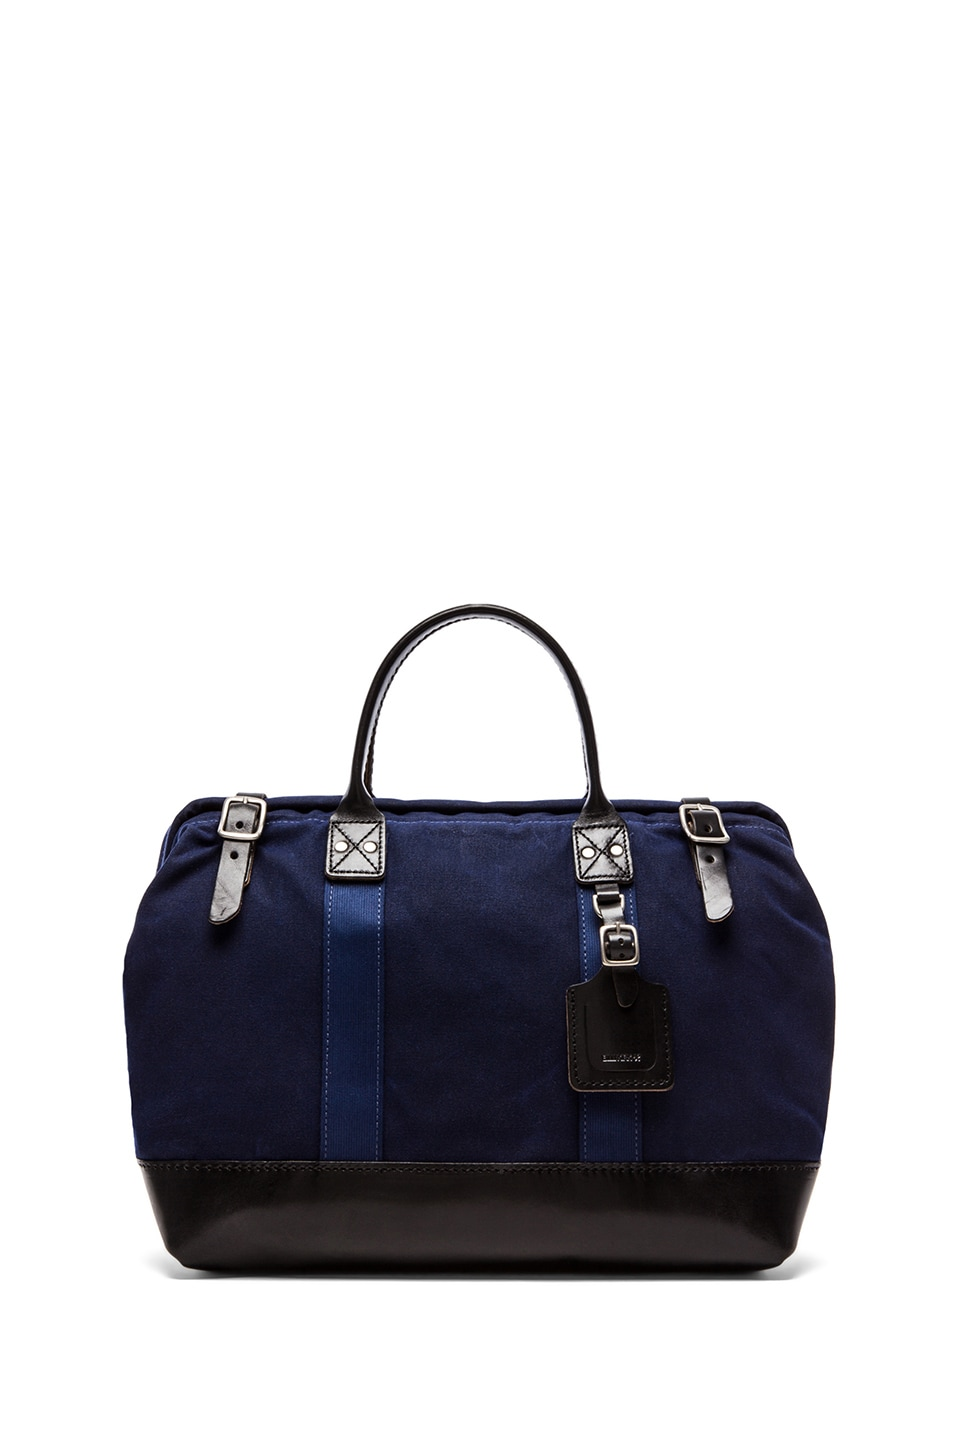 Billykirk No. 165 Medium Carryall in Navy Wax & Black